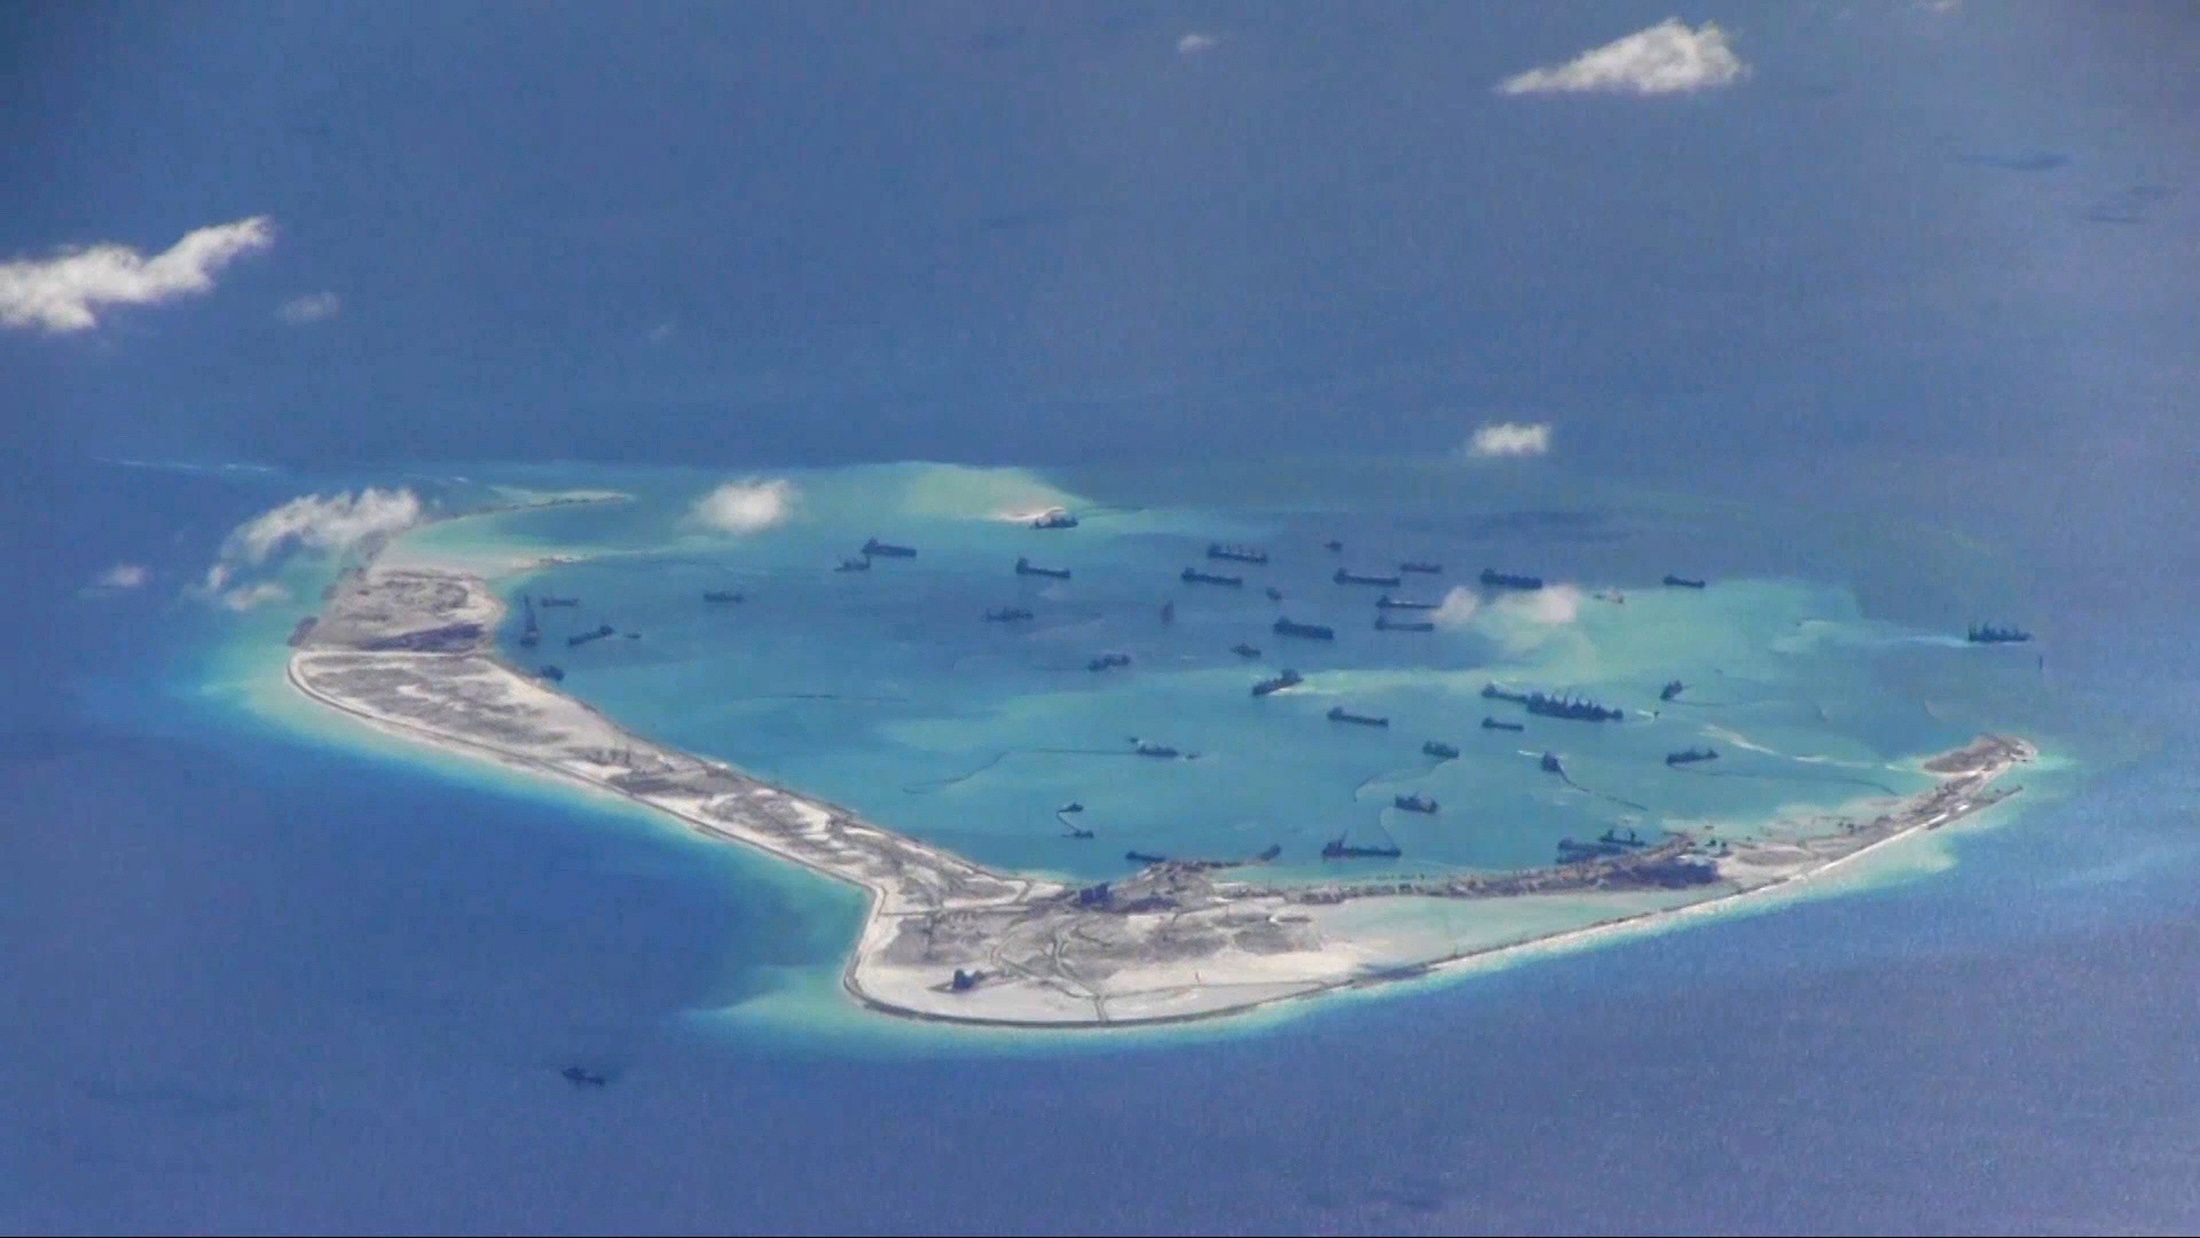 China: U.S. Military Report Driven by 'Cold War Thinking'